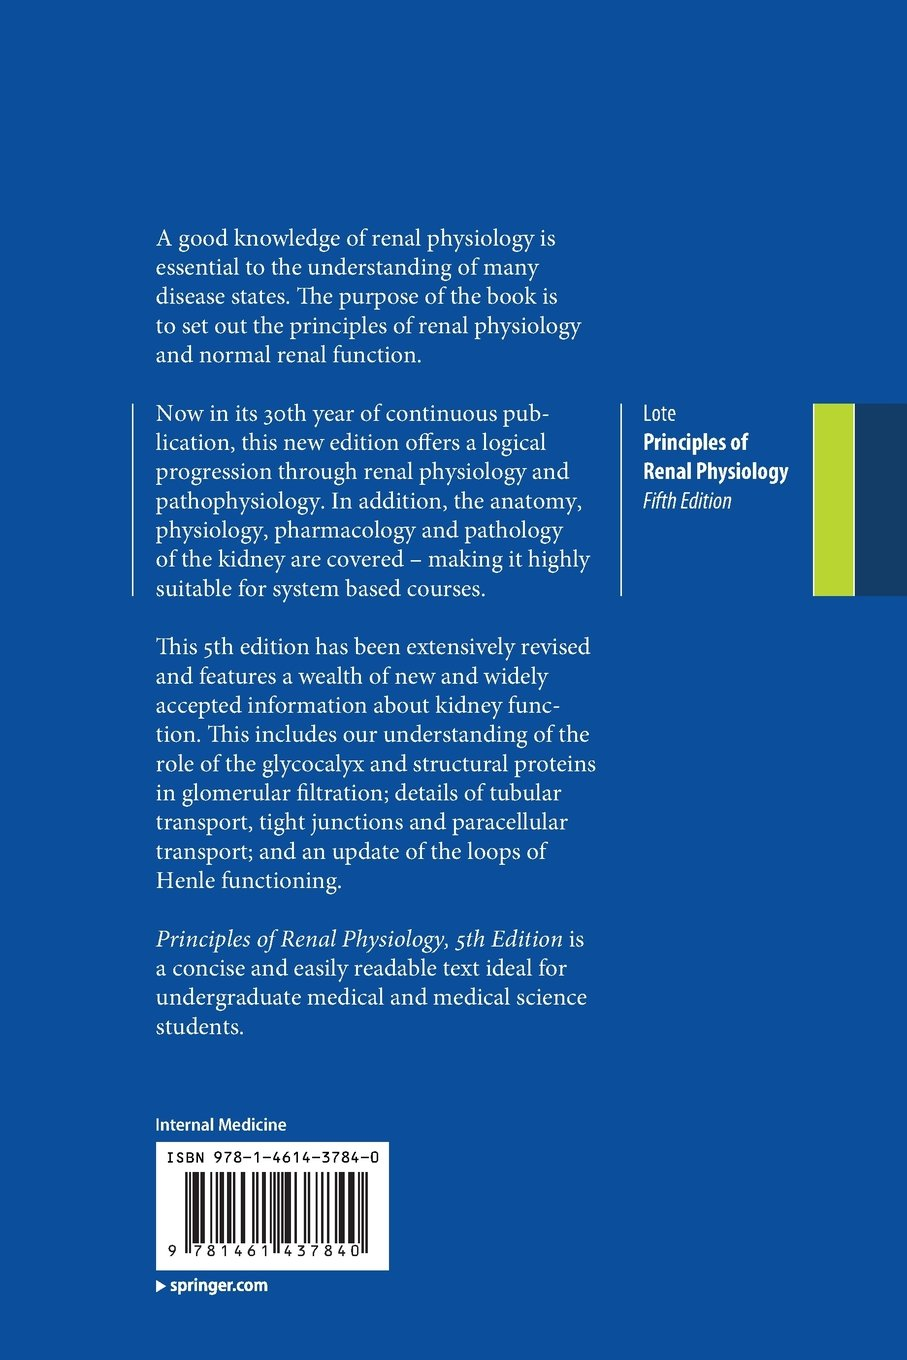 Principles of Renal Physiology: Fifth Edition: Amazon.co.uk ...